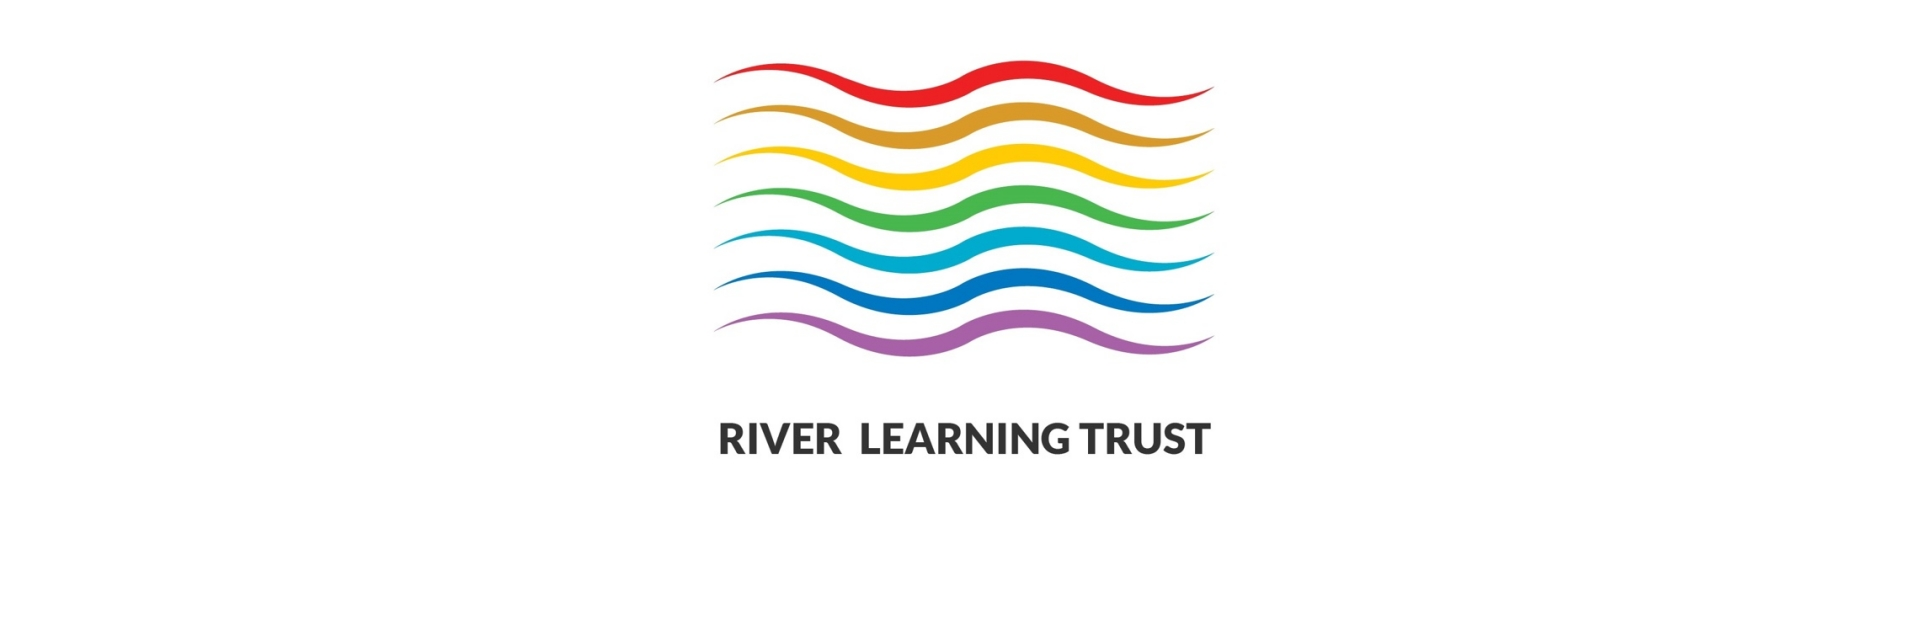 River Learning Trust